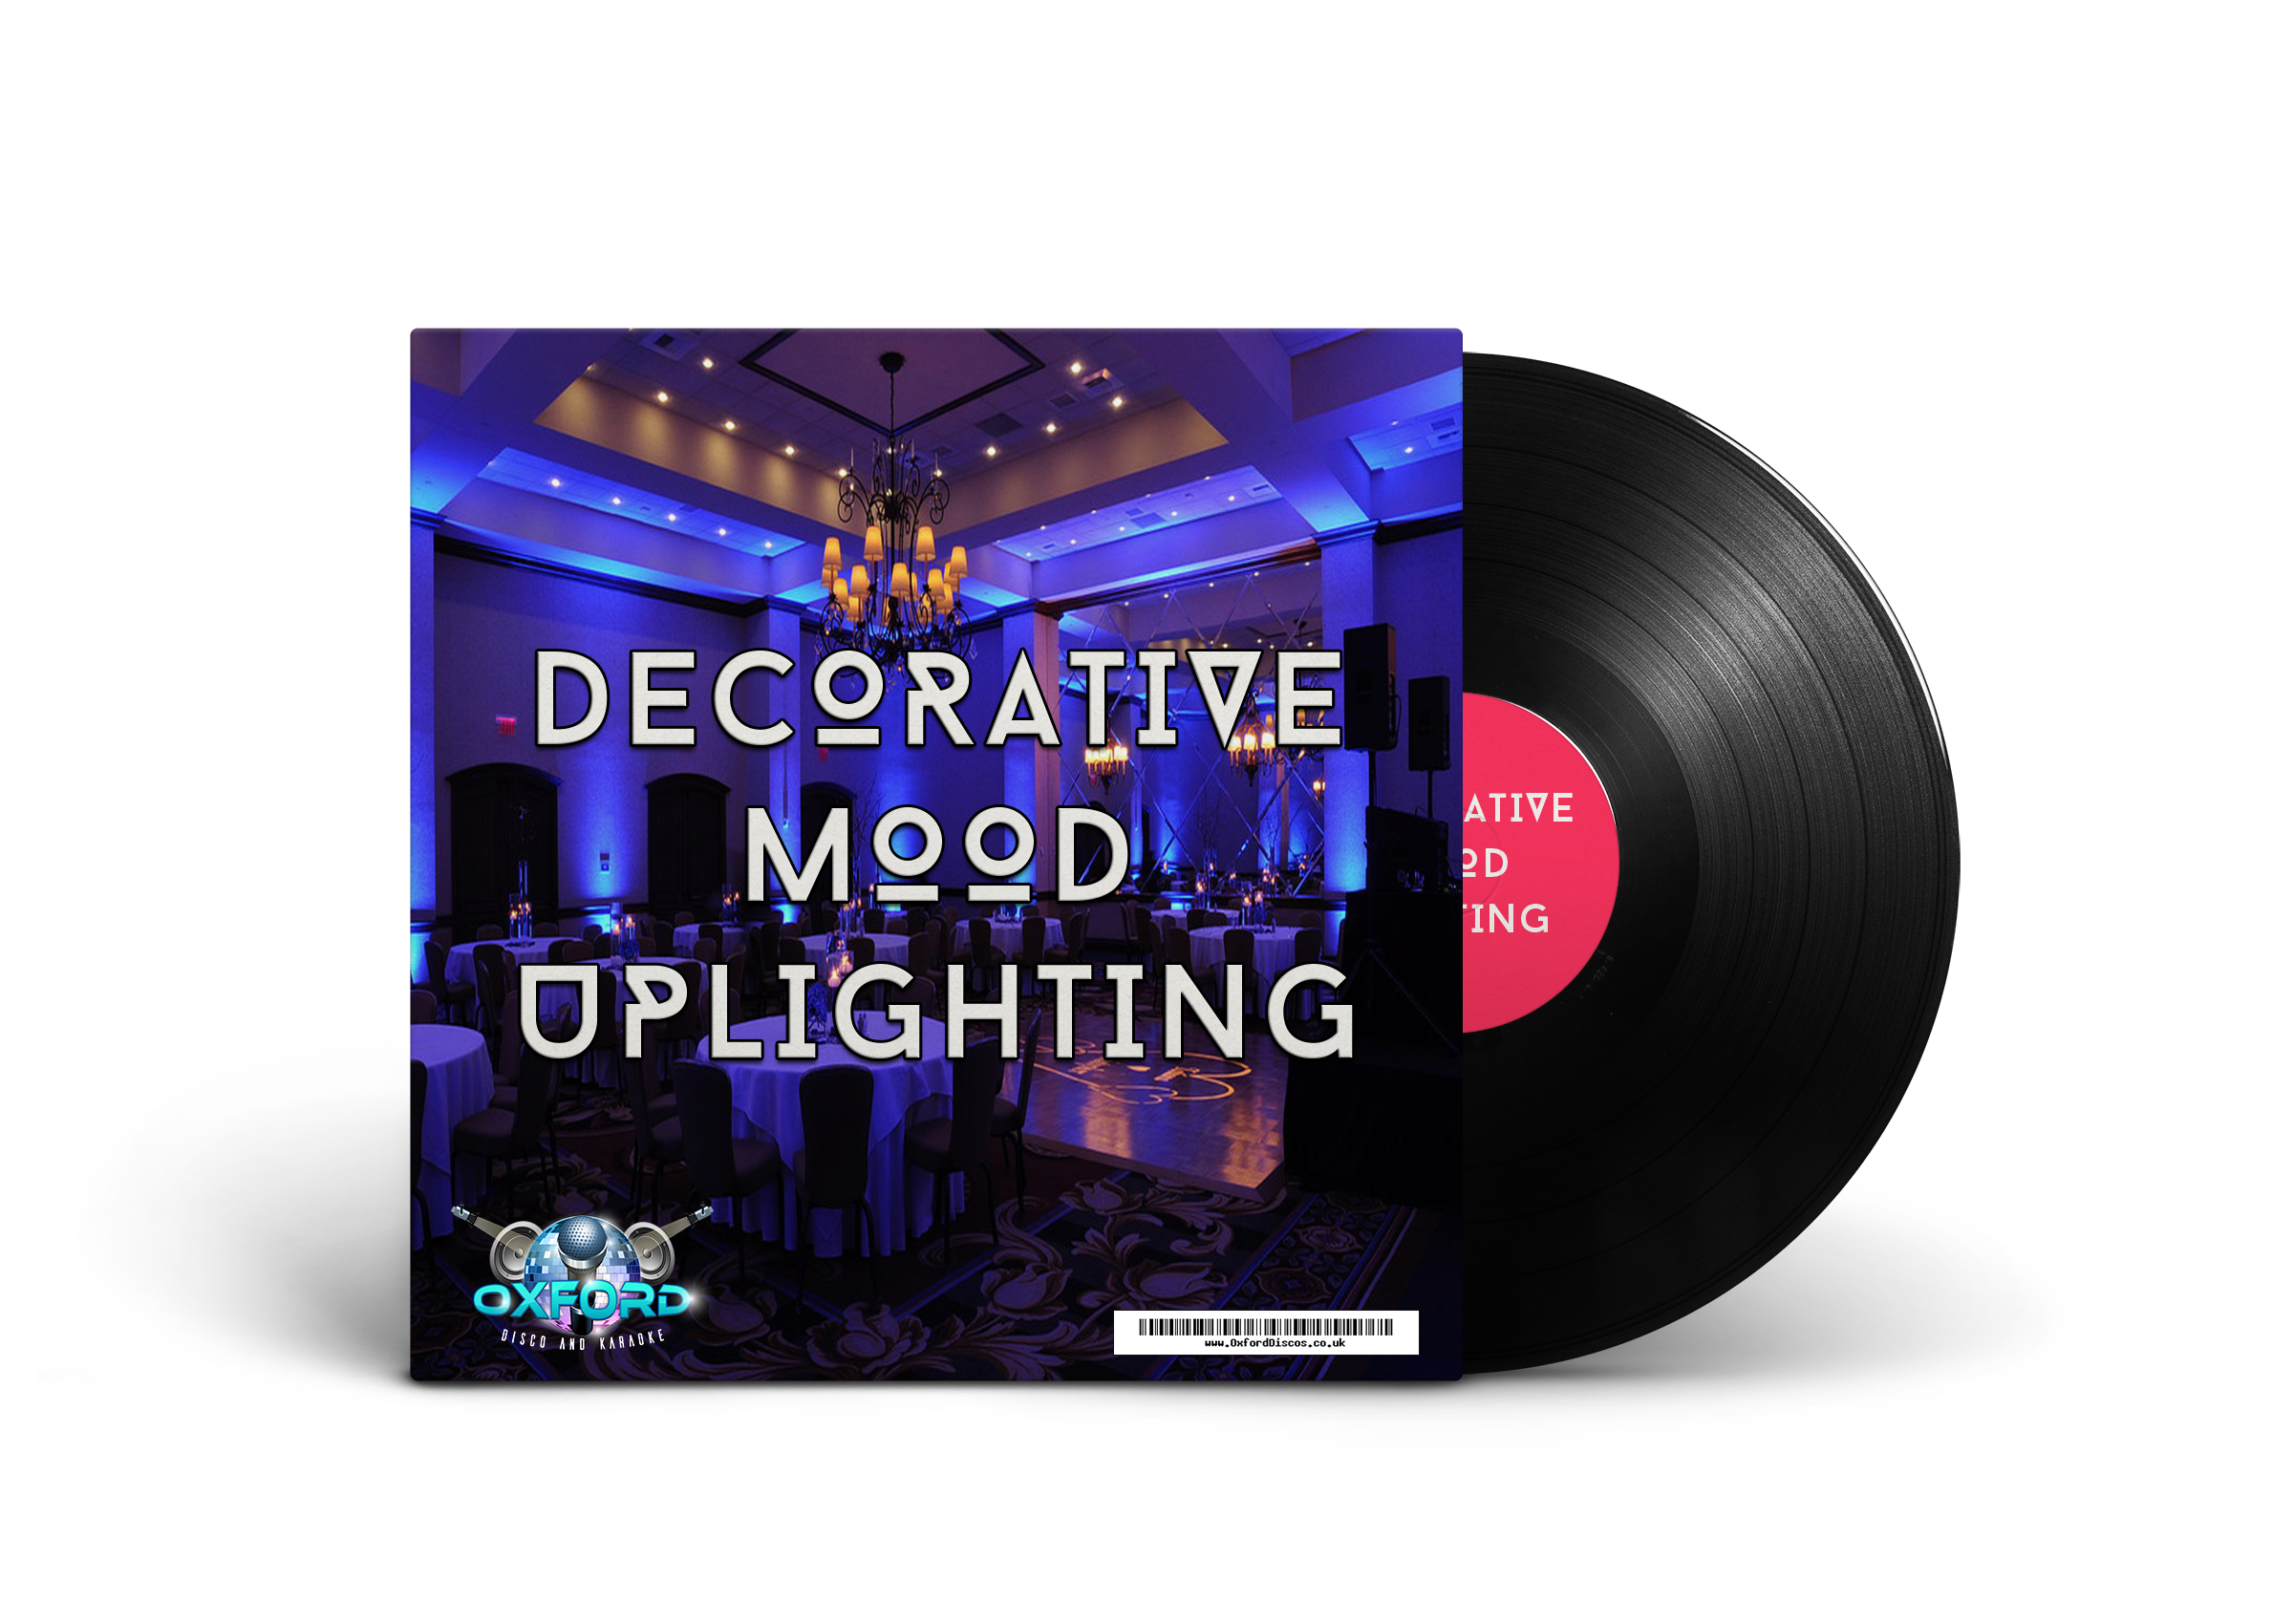 Oxford Disco and Karaoke Decorative Mood Lighting